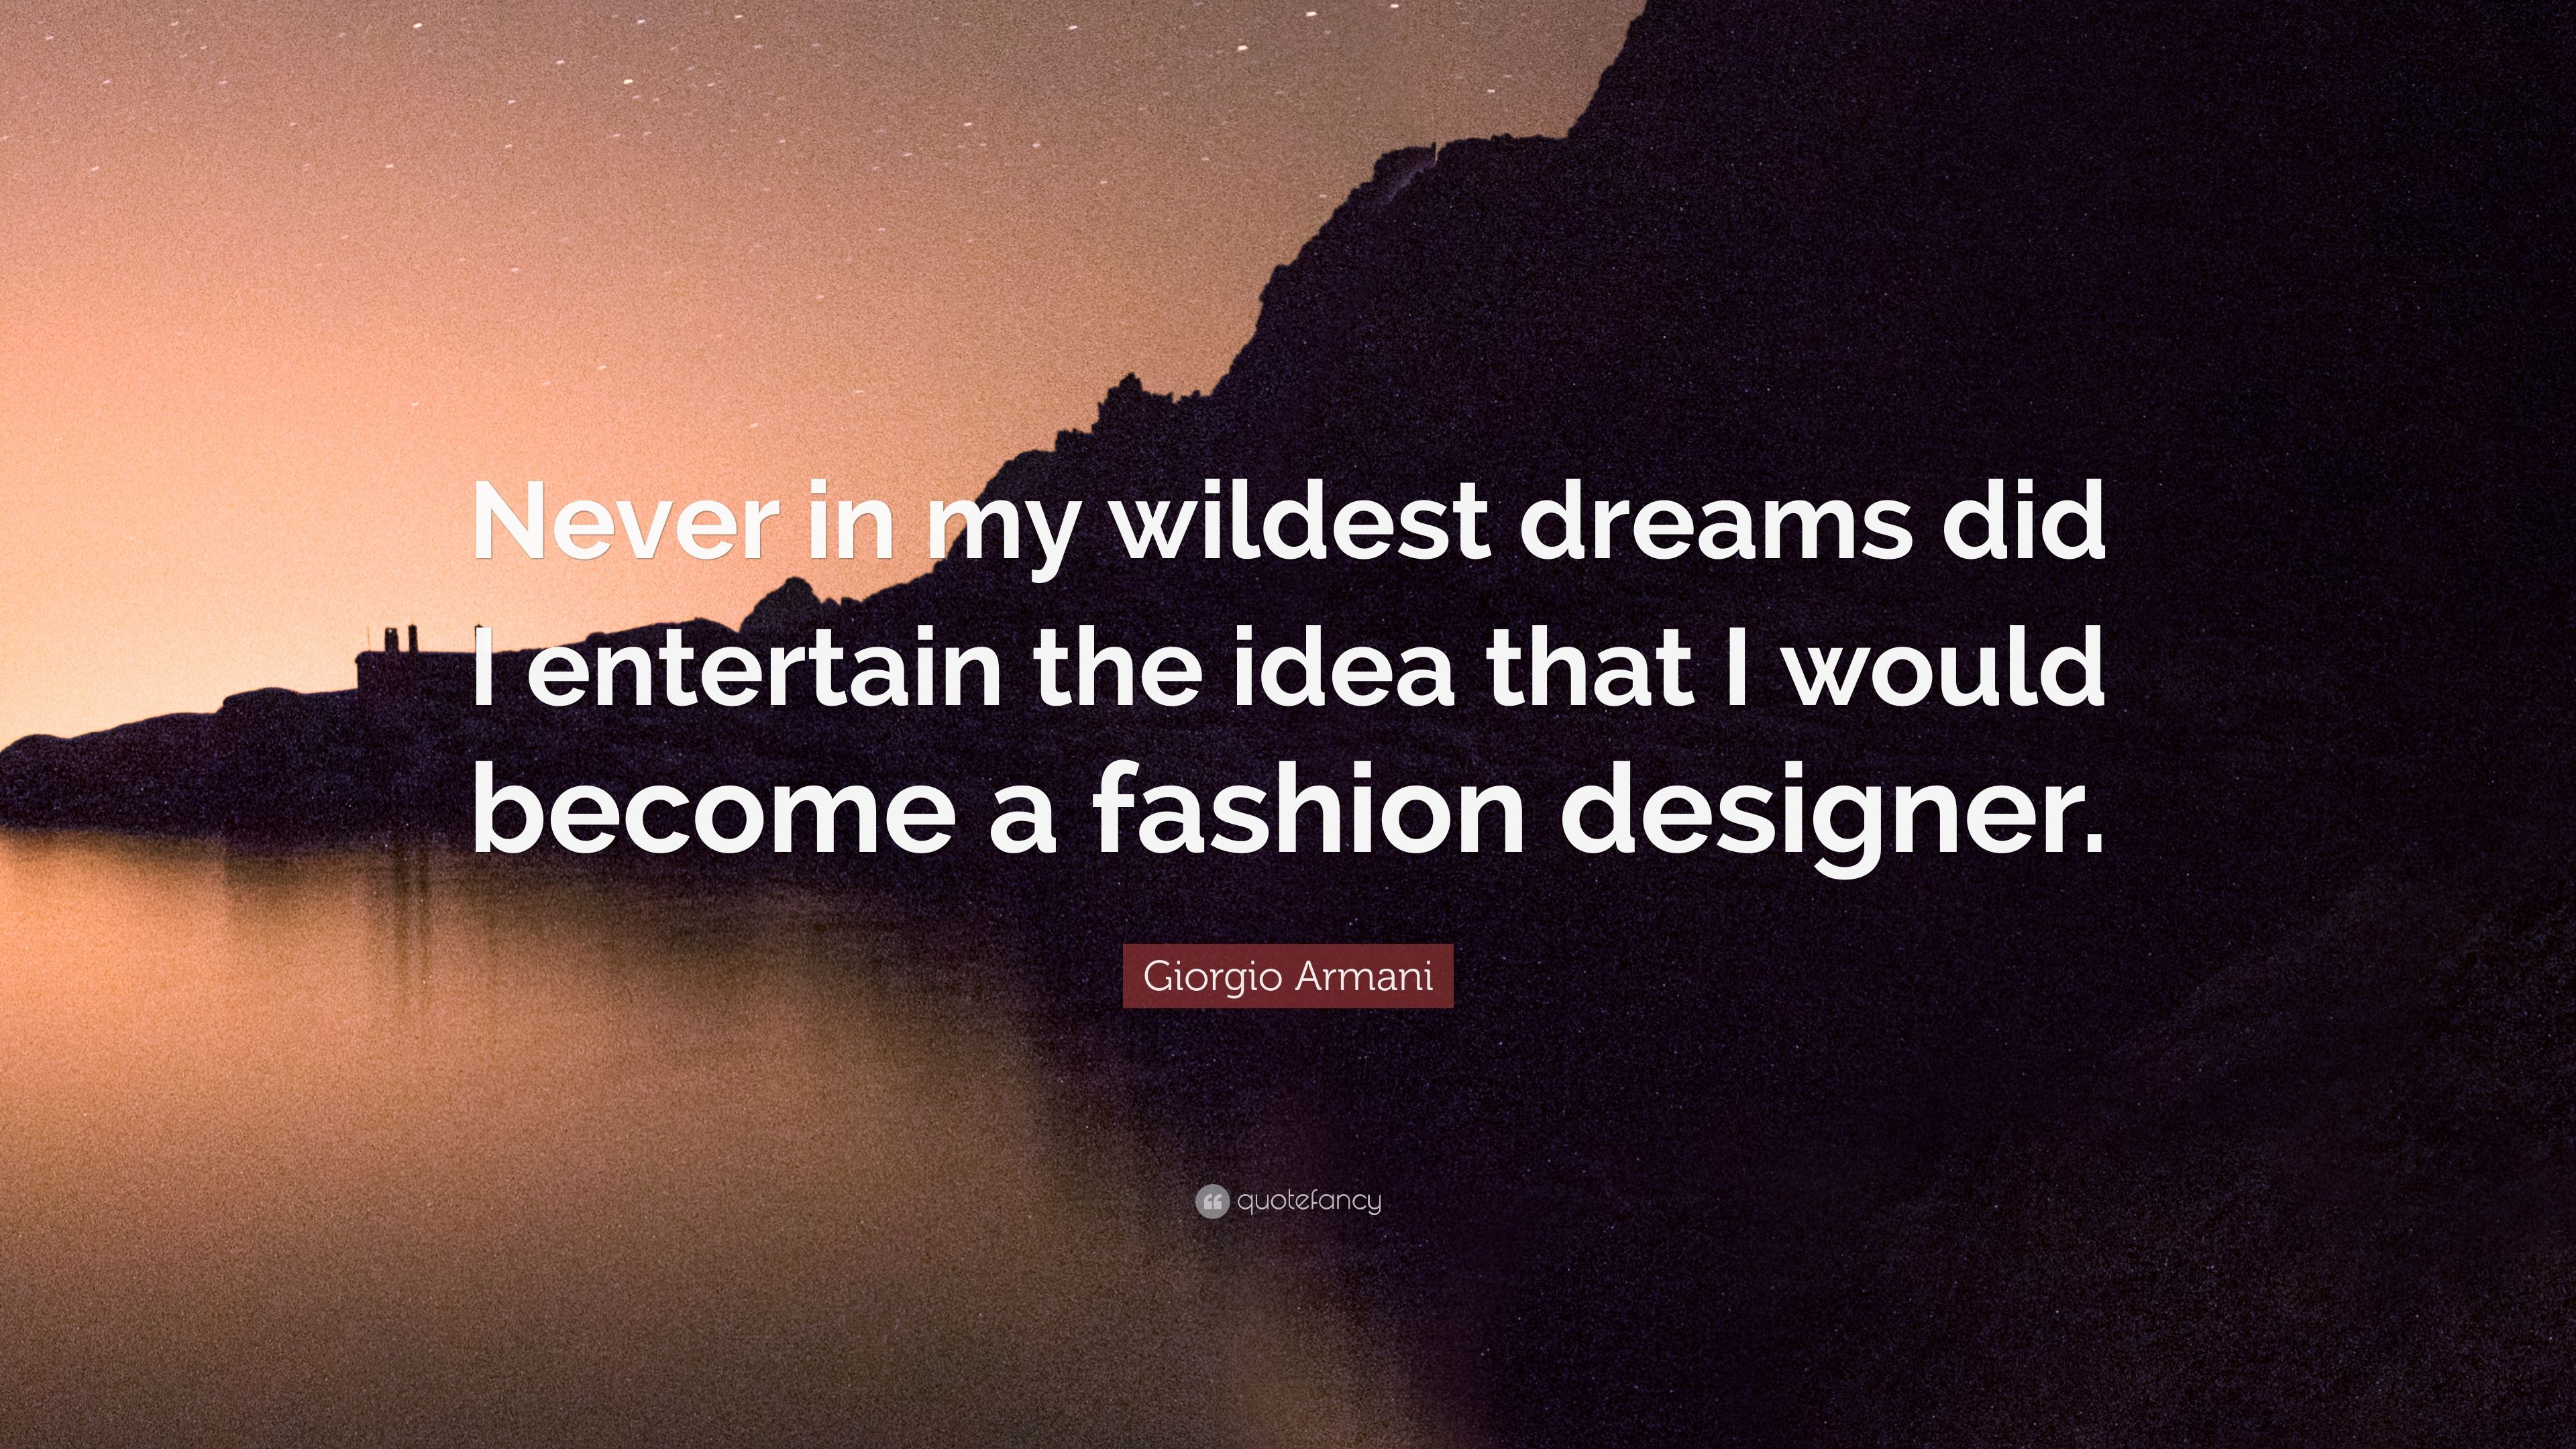 Giorgio Armani Quote Never In My Wildest Dreams Did I Entertain The Idea That I Would Become A Fashion Designer 7 Wallpapers Quotefancy